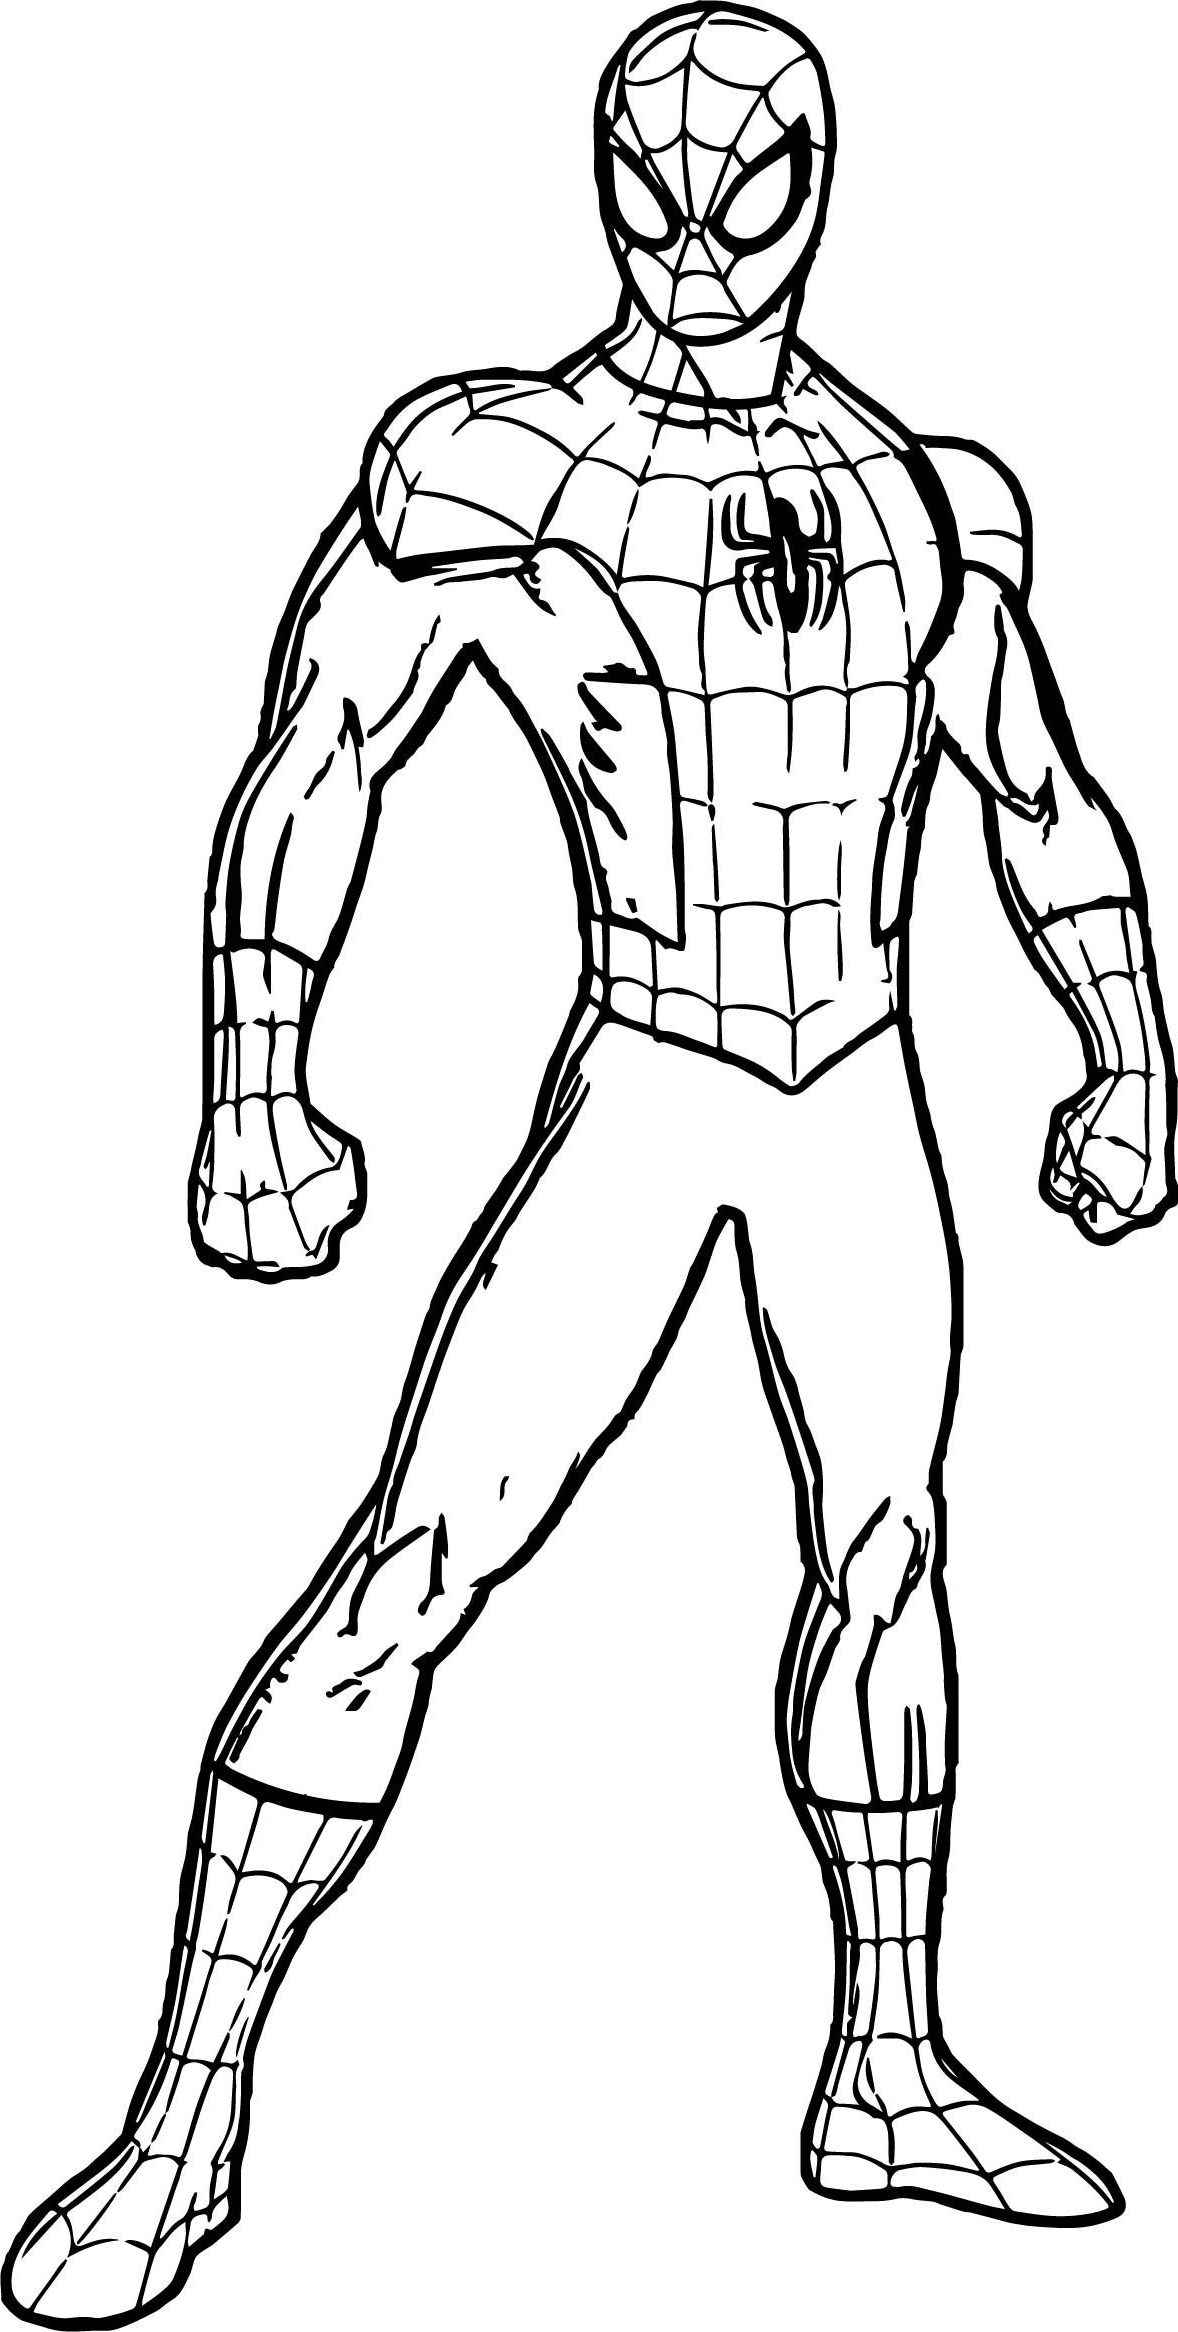 Spiderman Suit Coloring Page | Free coloring pages ...